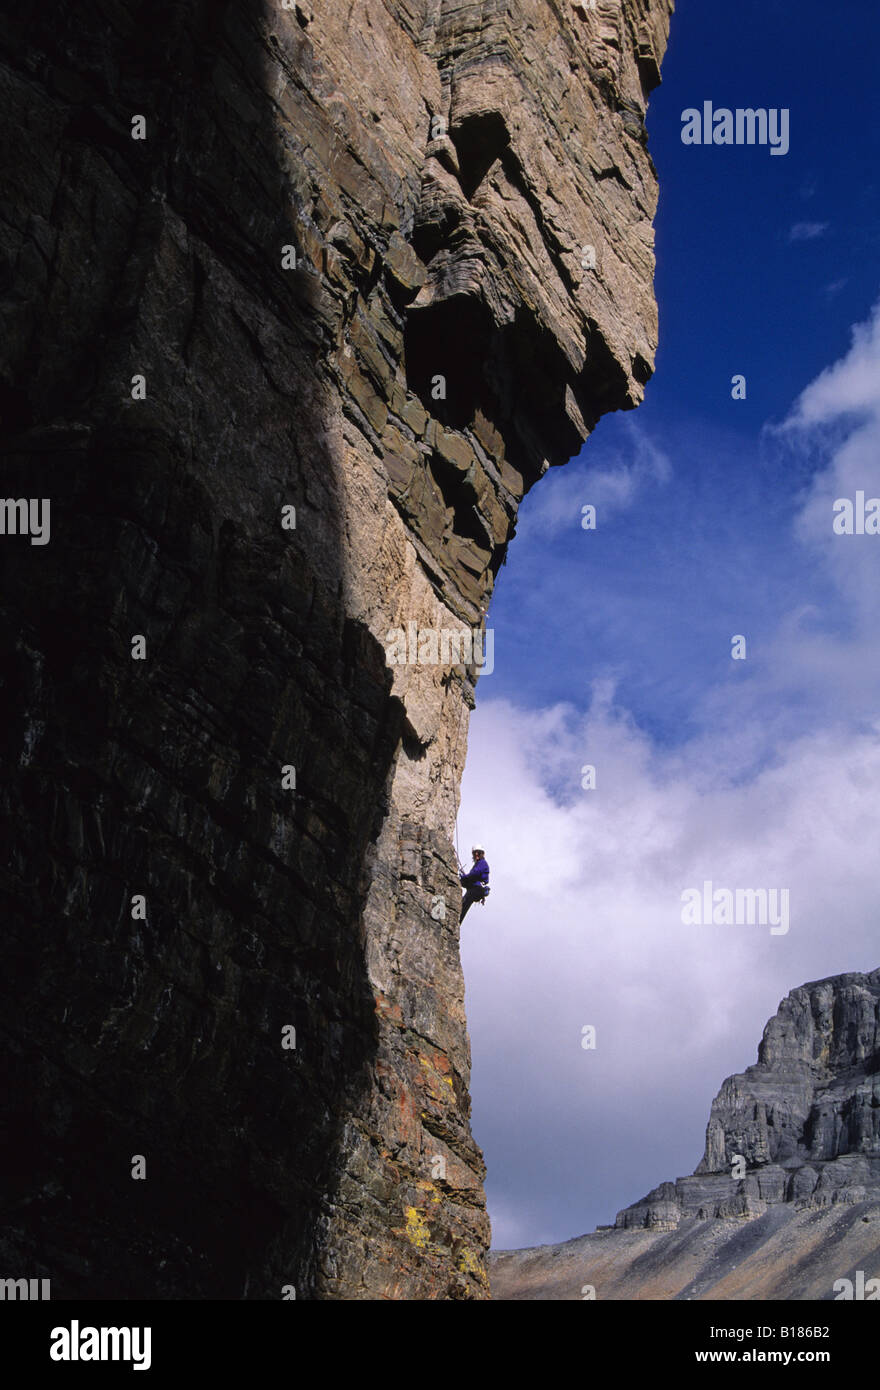 Climbers on the route Cardiac Arete The Grand Sentinel Banff National Park, Alberta, Canada. - Stock Image